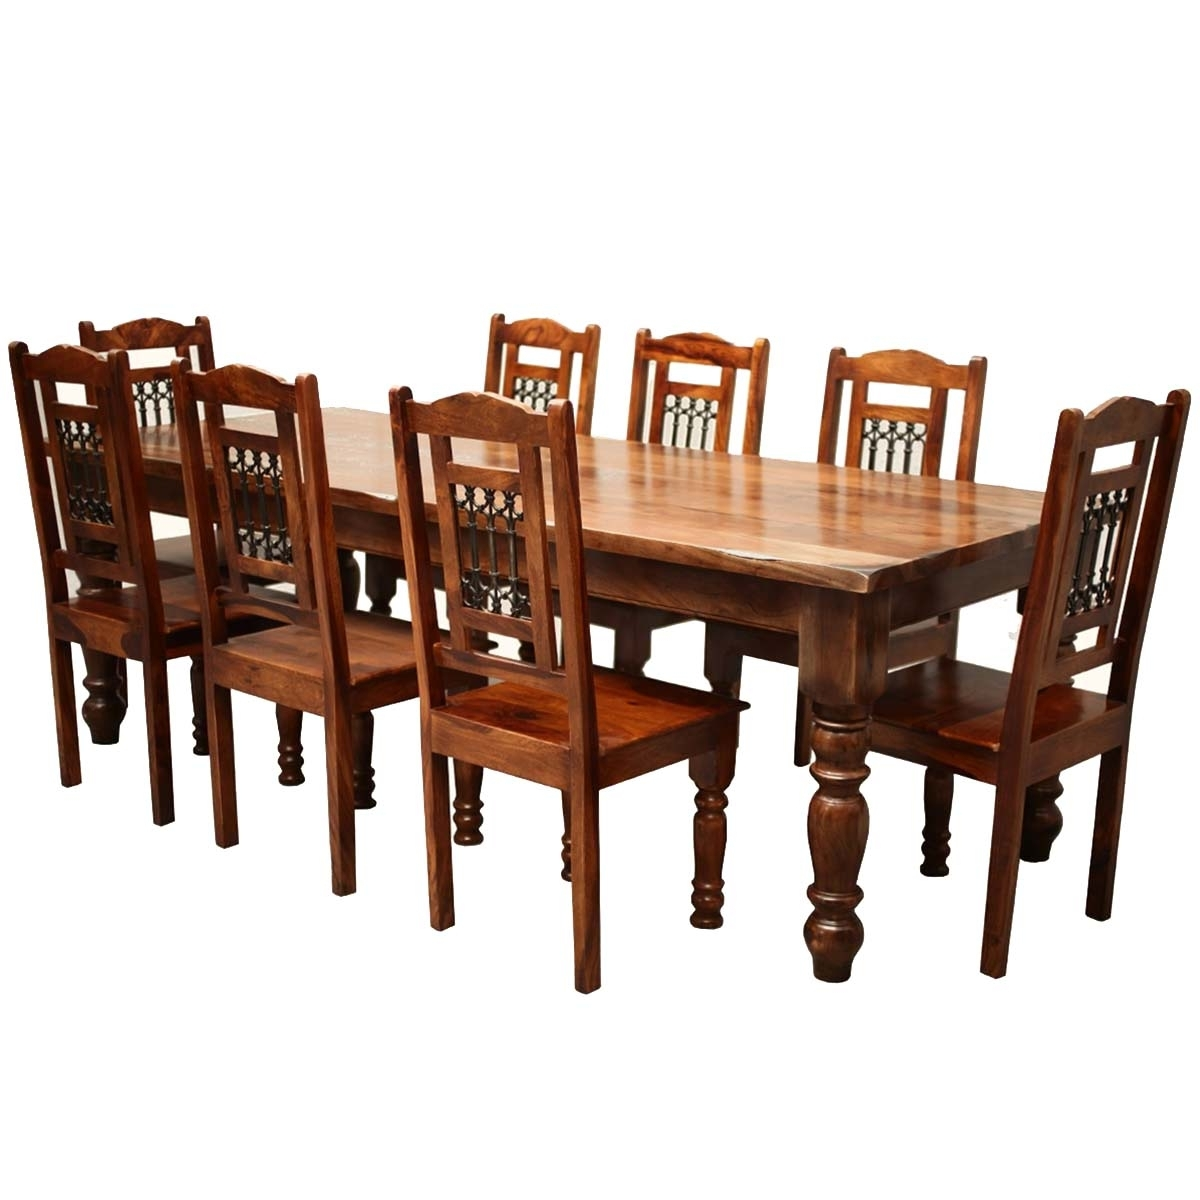 8 Seater Round Dining Table And Chairs With Current Rustic Furniture Solid Wood Large Dining Table & 8 Chair Set (View 6 of 25)